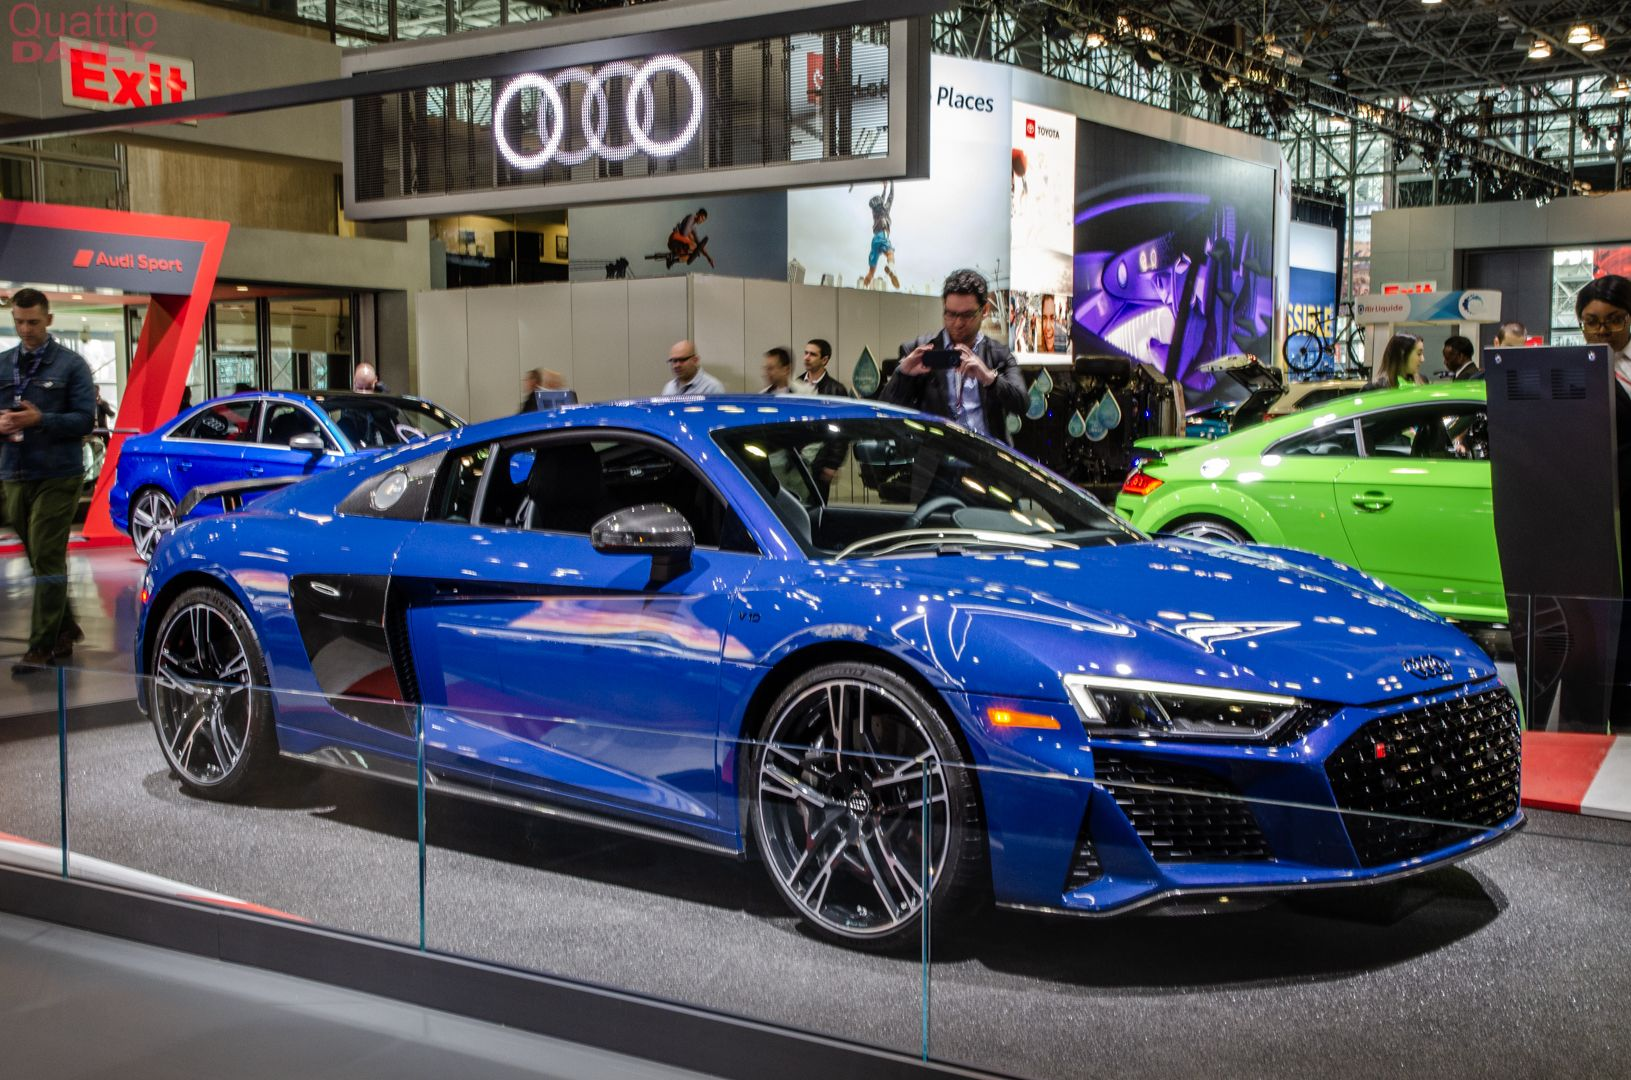 2019 Nеw Yоrk Autо Shоw Phоtо Gаllеrу Good looking cars